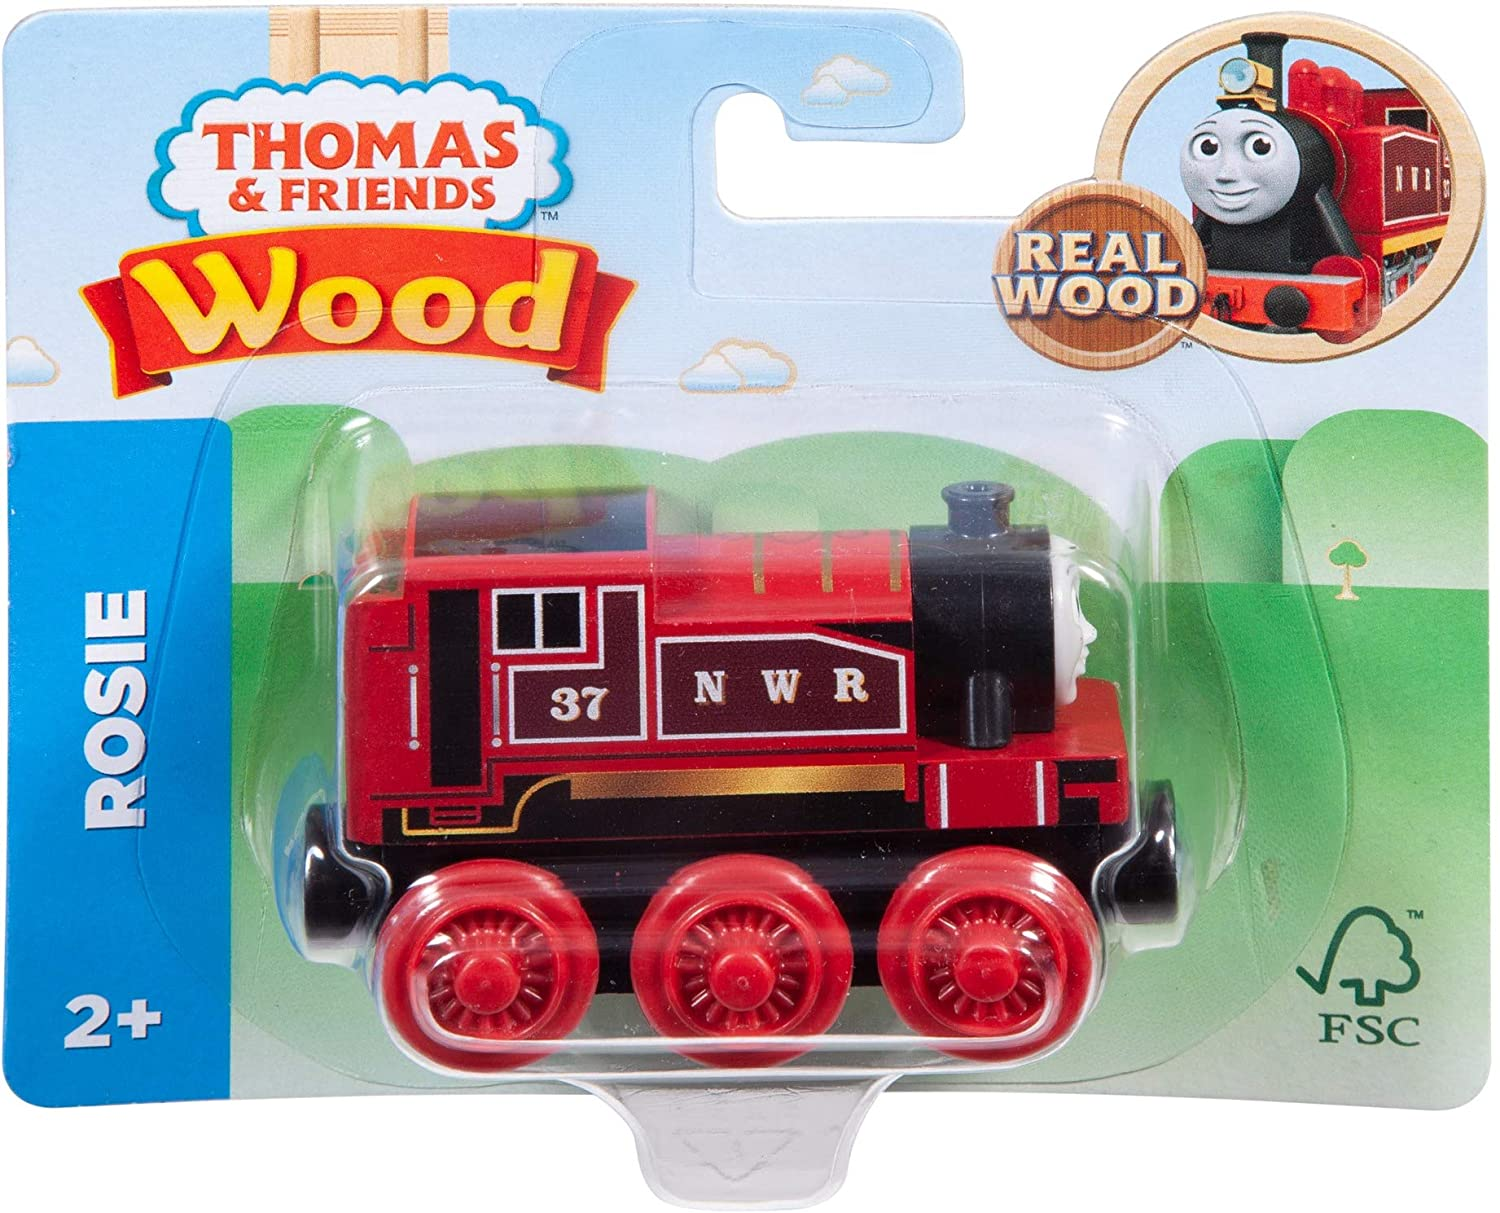 Thomas & Friends: Rosie Wooden Train - JKA Toys